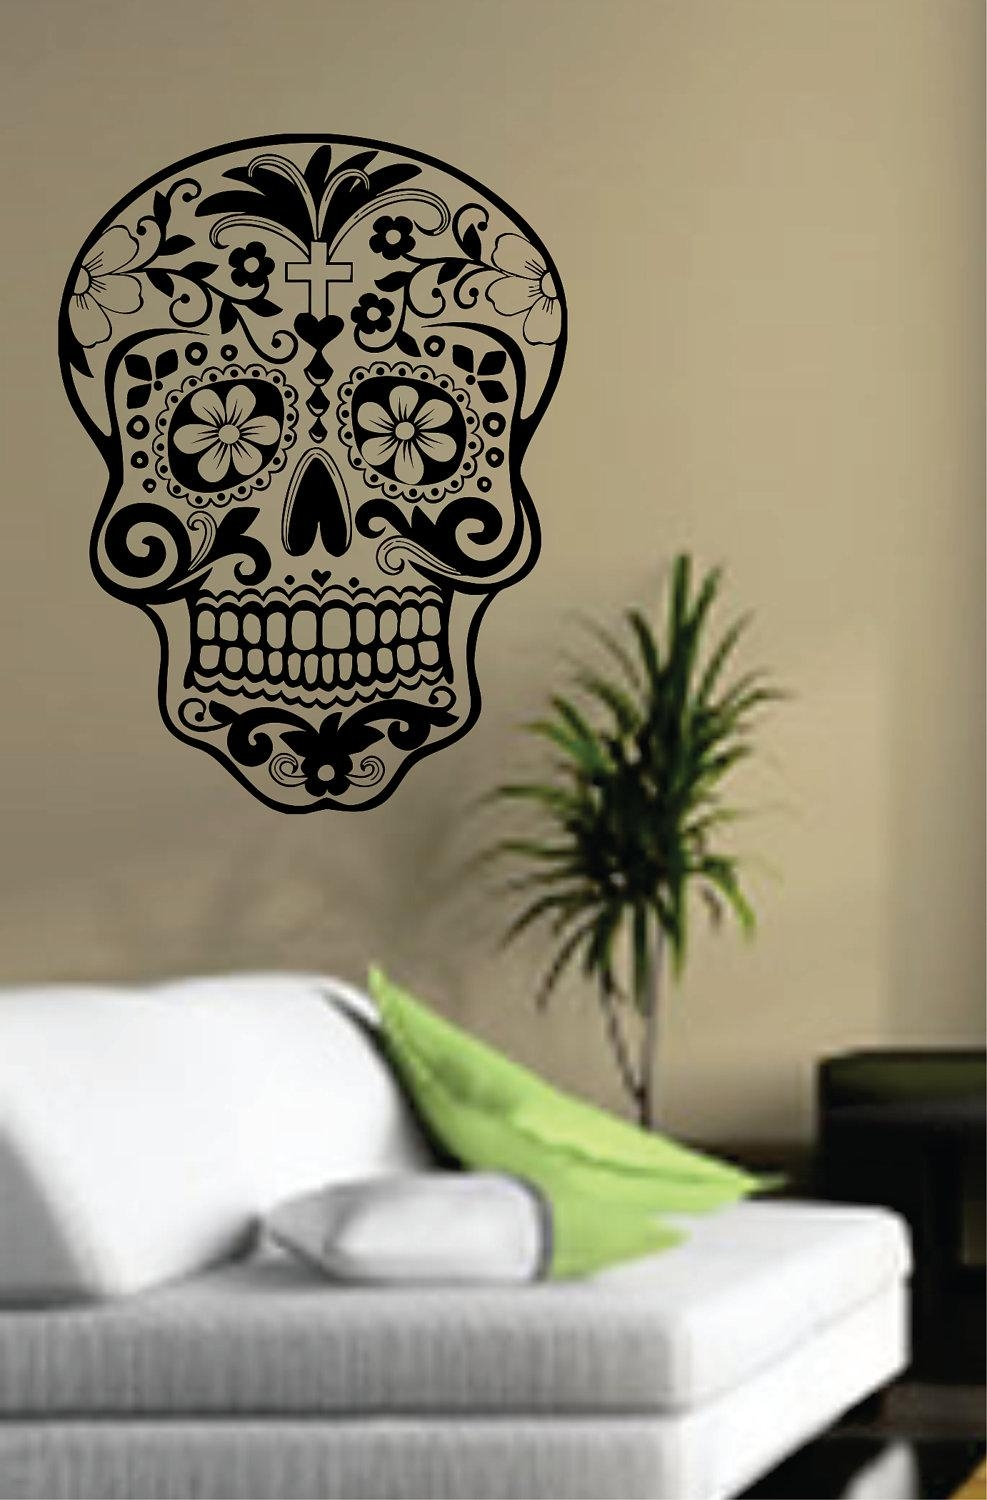 Vinyl Sticker Wall Art | Wallartideas With Regard To Tim Burton Wall Decals (Image 18 of 20)